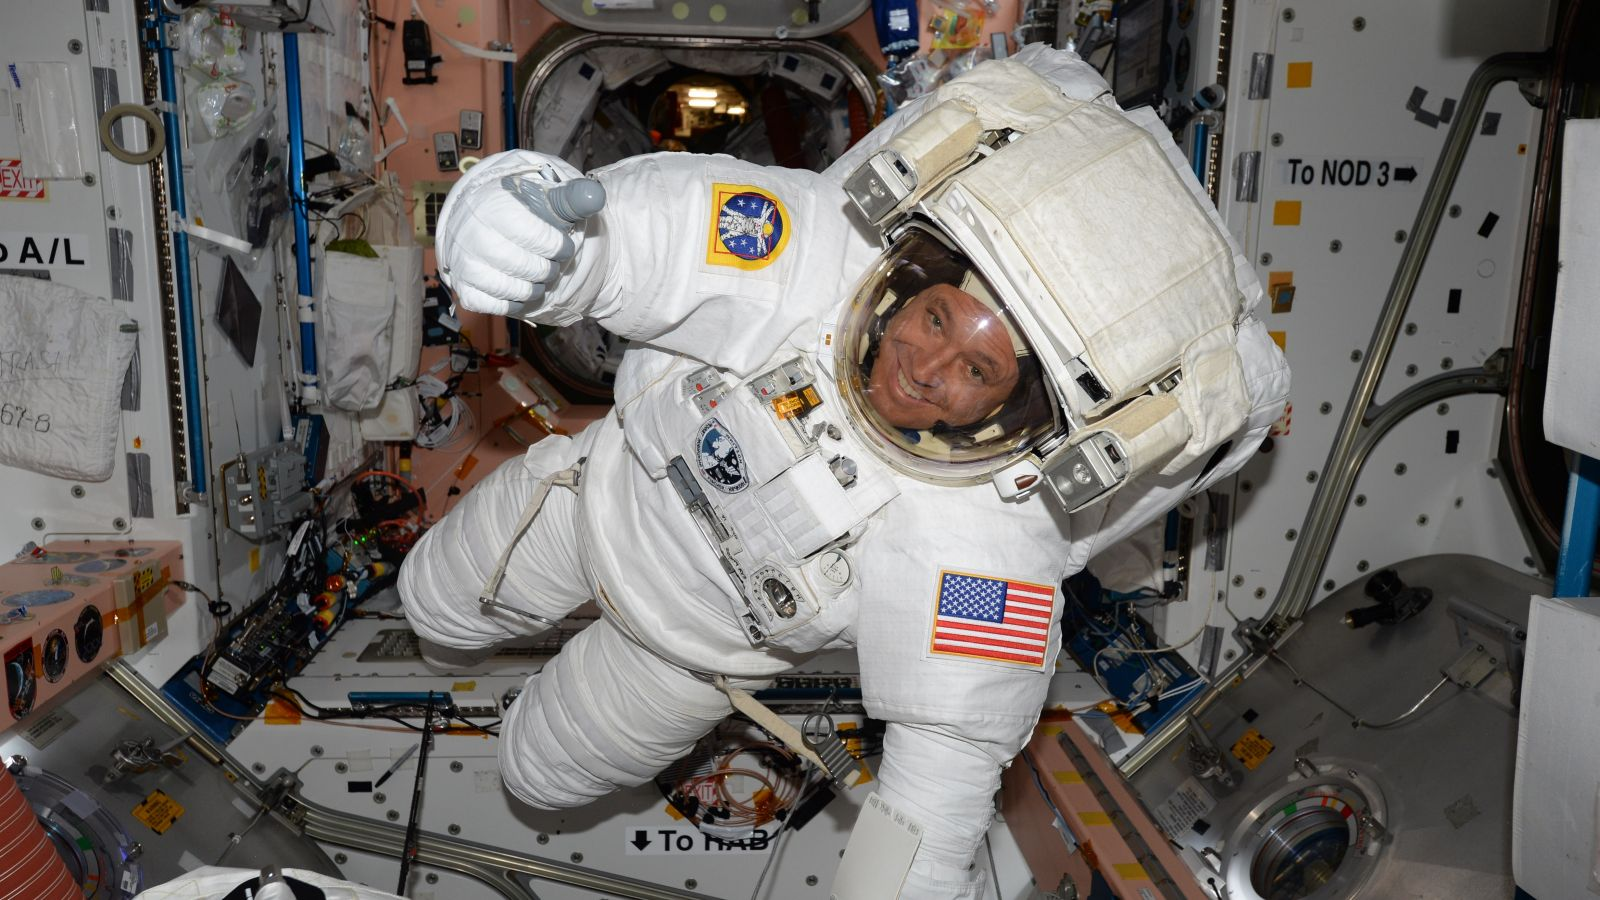 The 200th spacewalk outside the International Space Station is pretty epic